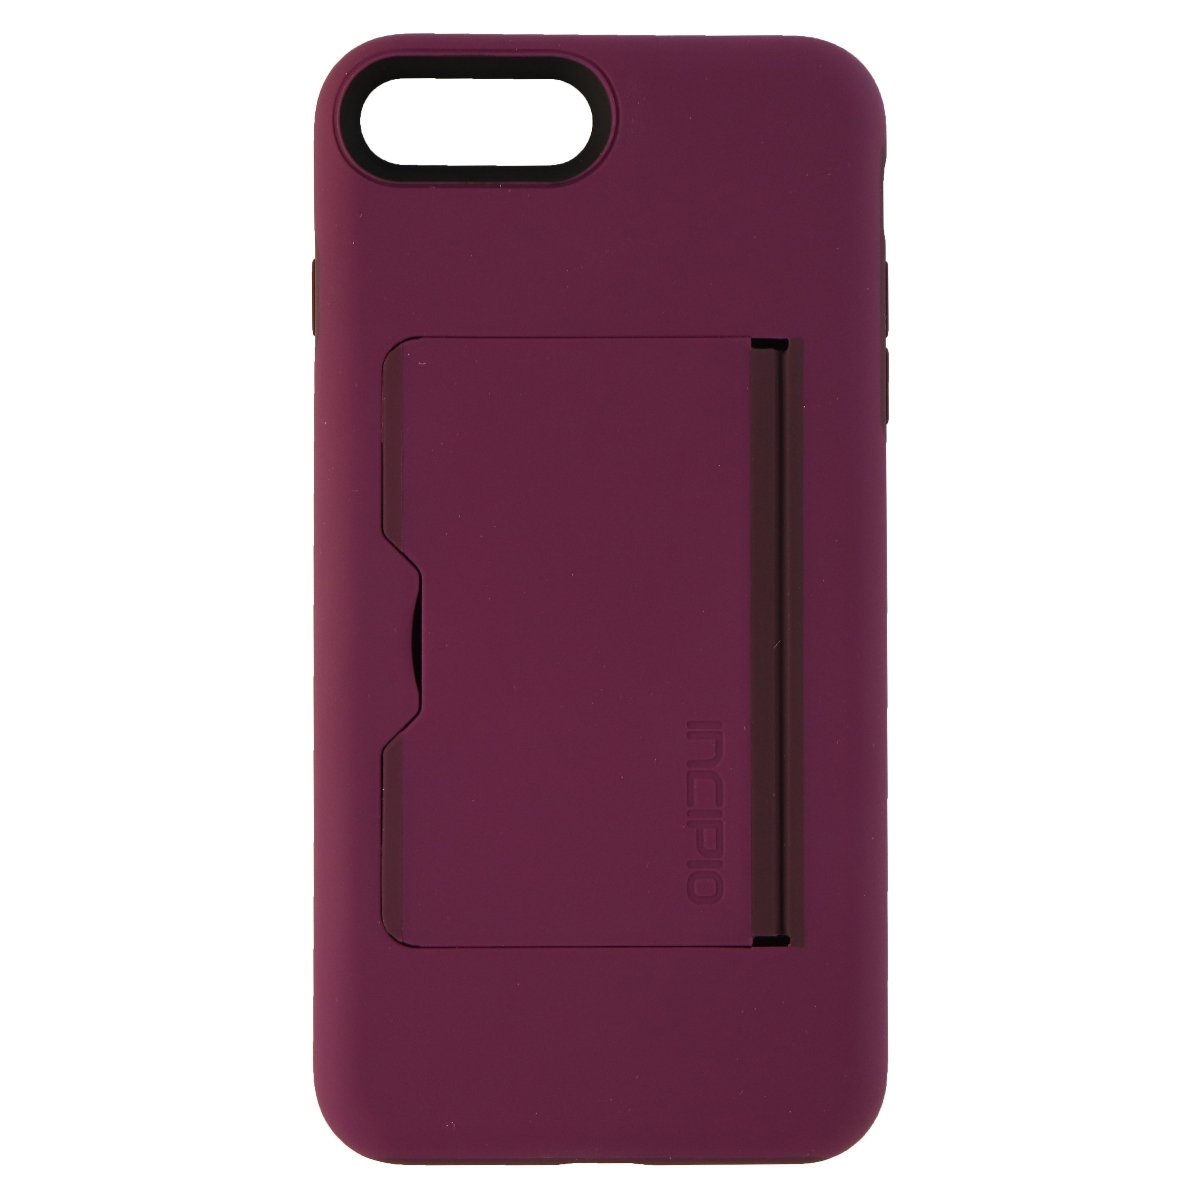 best service f915a 30169 Incipio IPH-1503-PLM Apple iPhone 7 Plus / 8 Plus Stowaway Credit Card Hard  Shell Case with Silicone Core - Plum